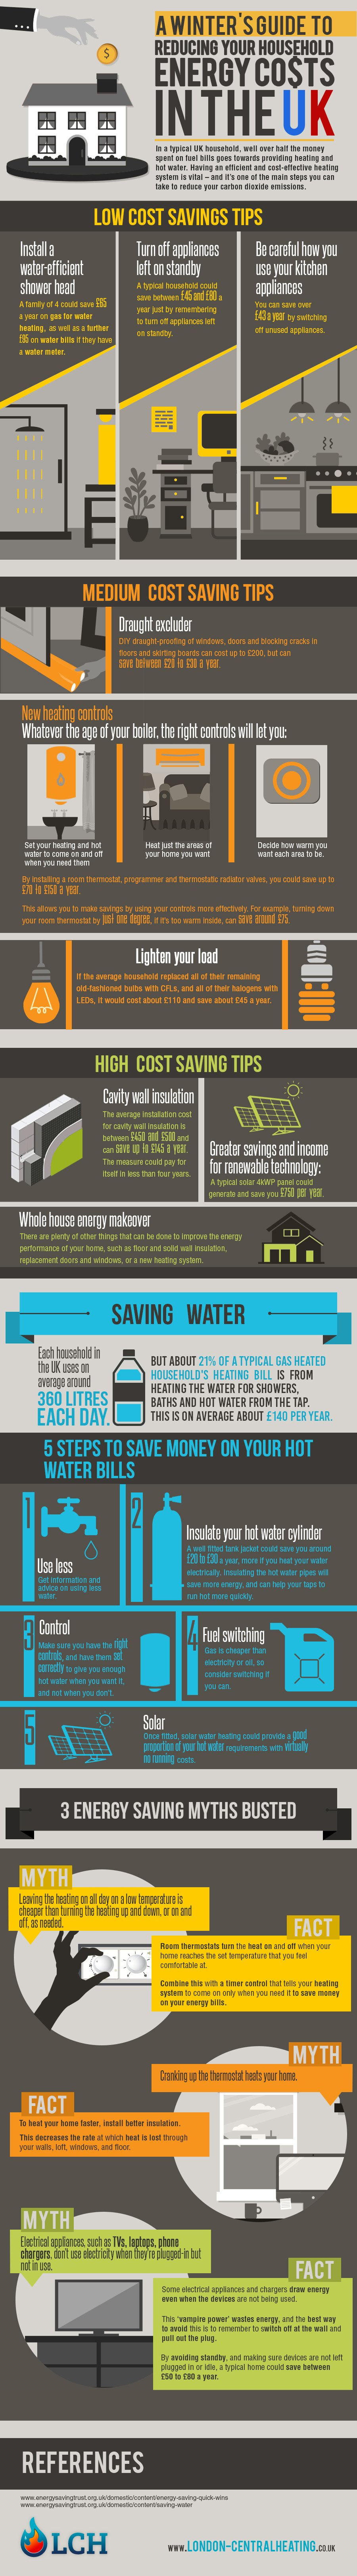 reduce household energy costs